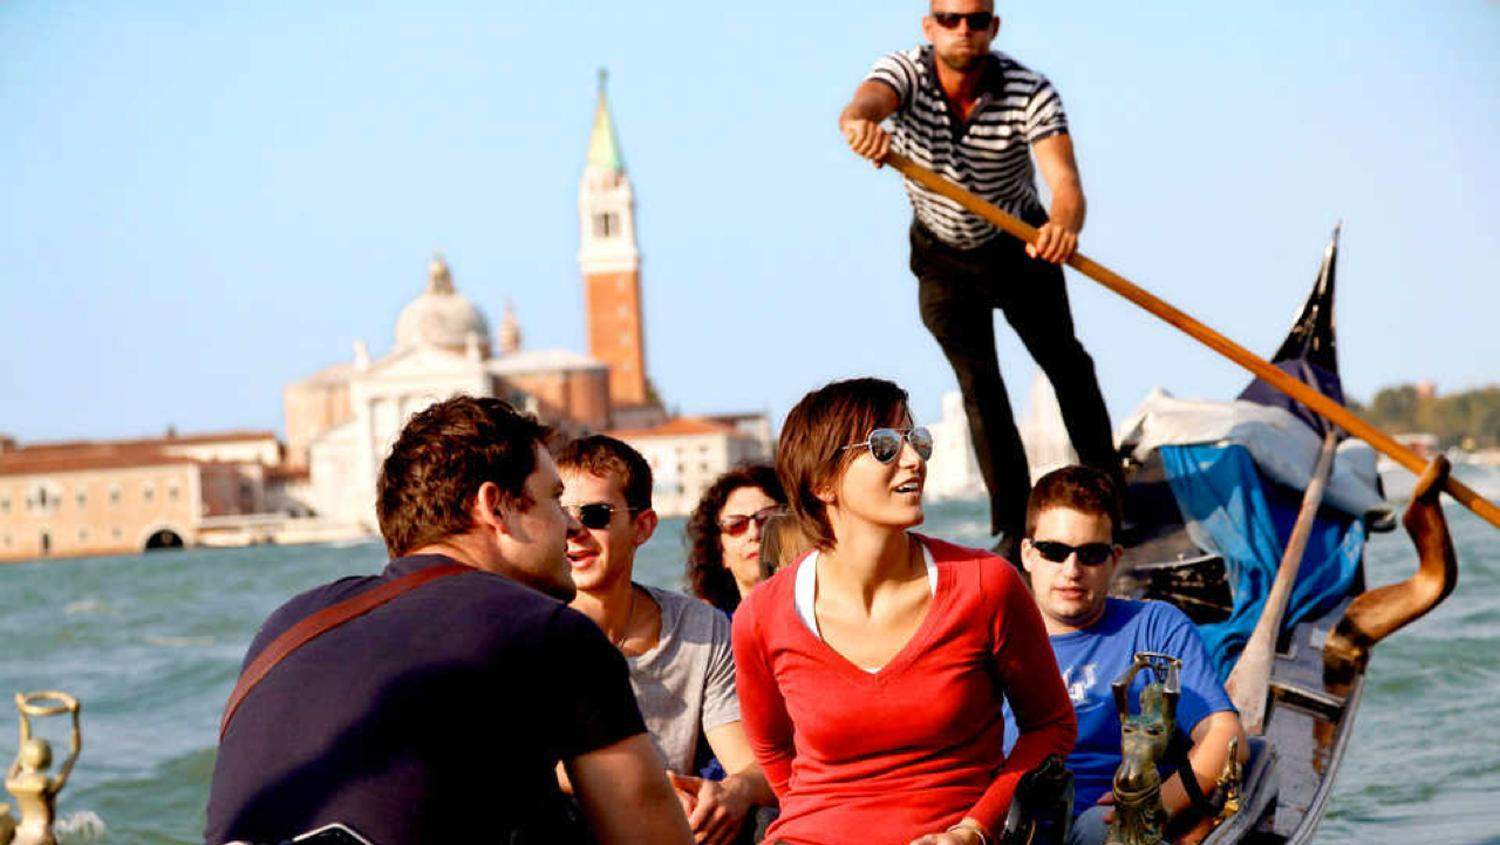 Get Your Guide offers tours and excursions in destinations such as Venice.